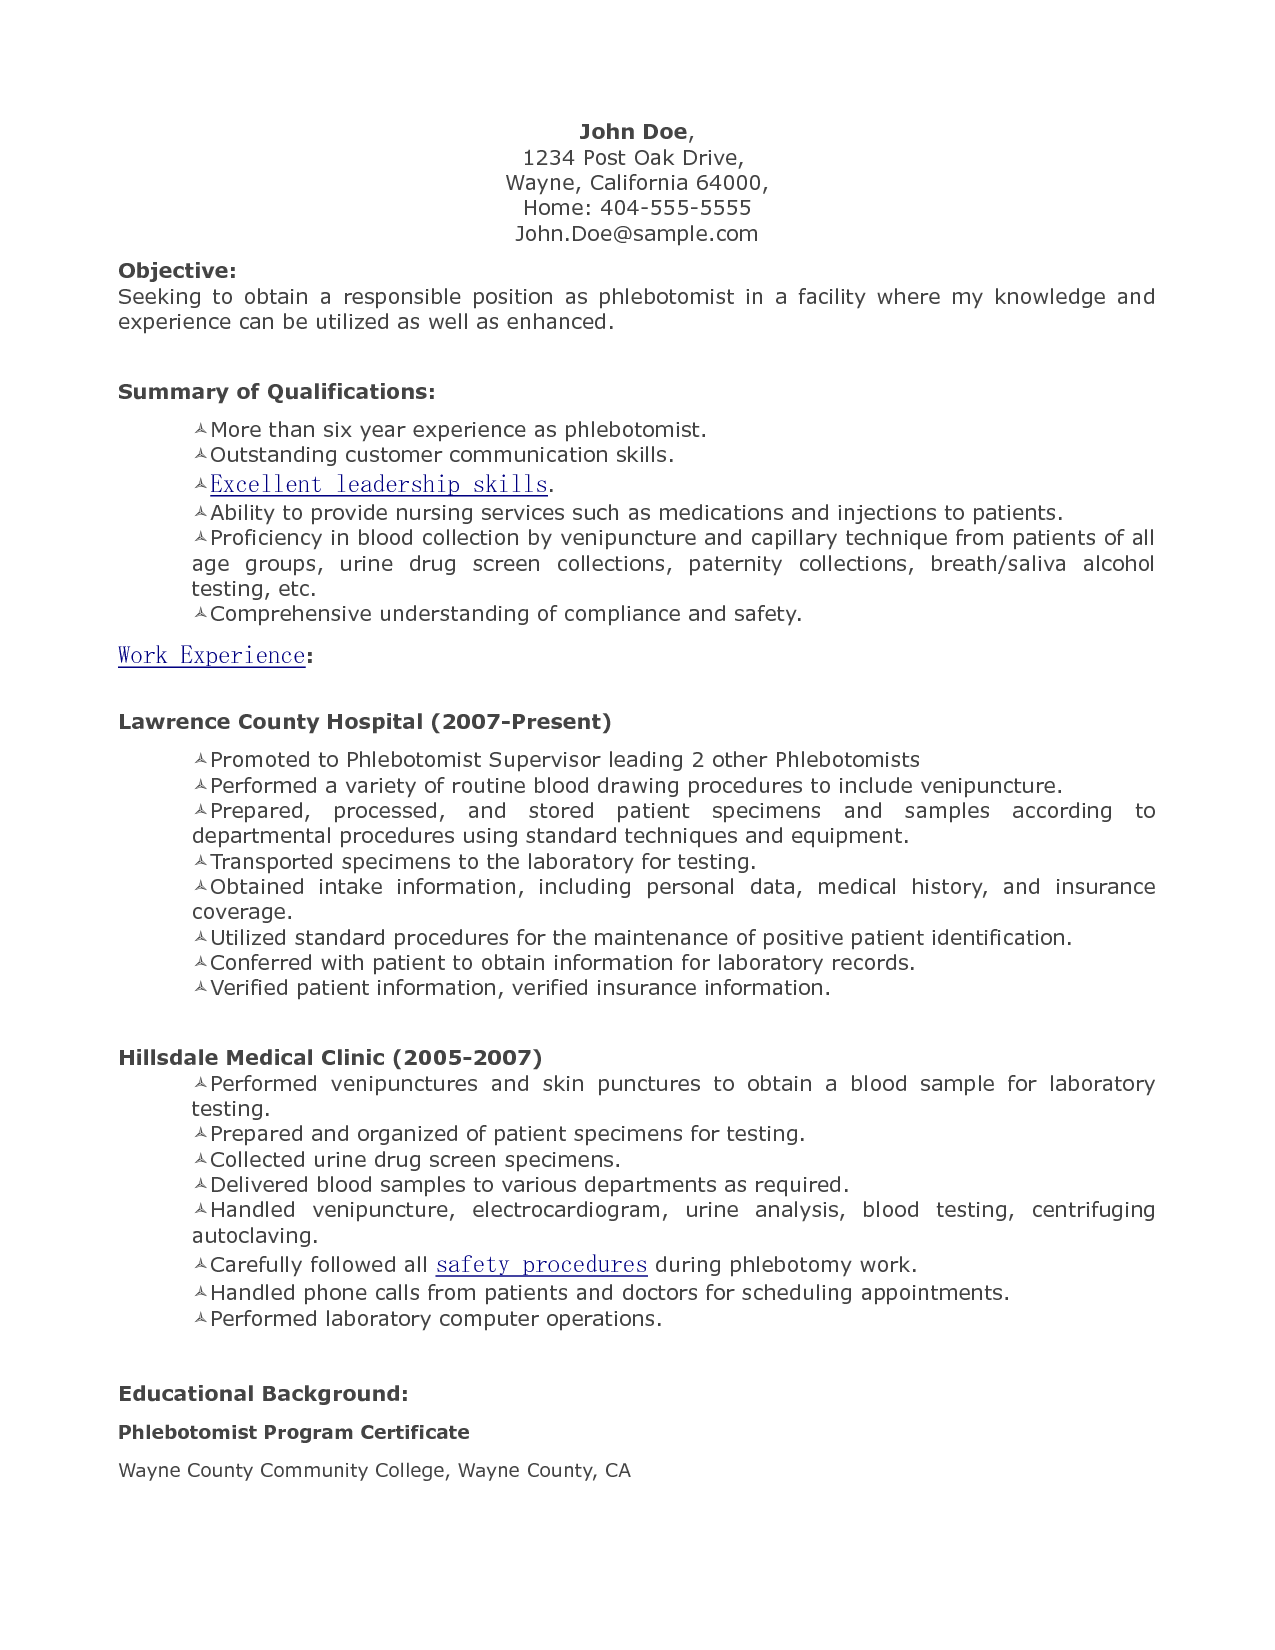 Resume Objectives For A Phlebotomist  Sample Phlebotomist Resume